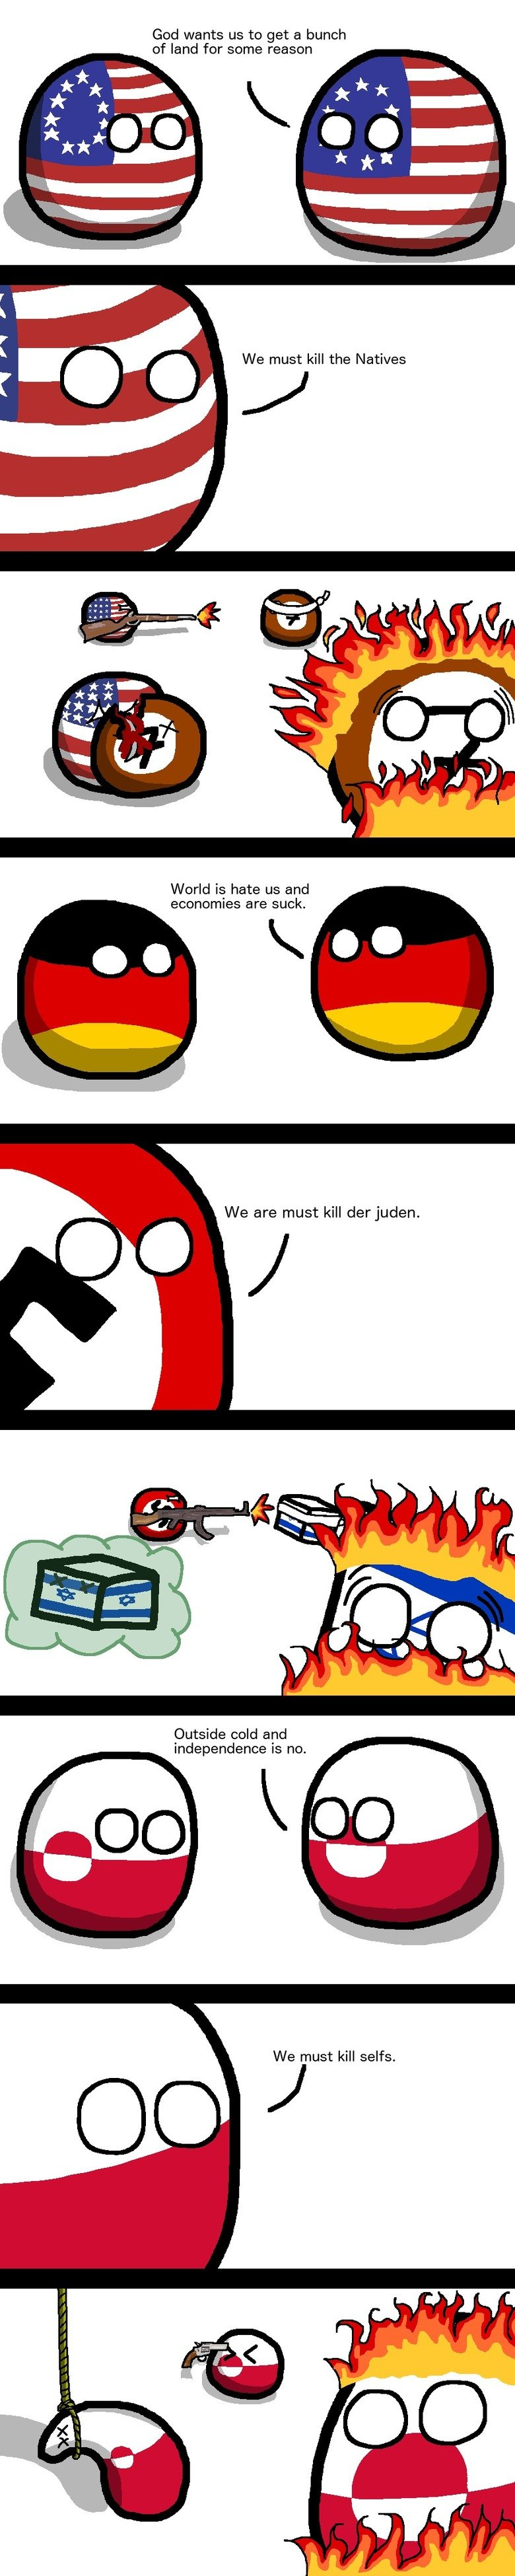 Action Plans. Poland is laughingstock and cannot into space. God wants us to get a bunch of land for some reason We must kill the Natives World is. hate us and